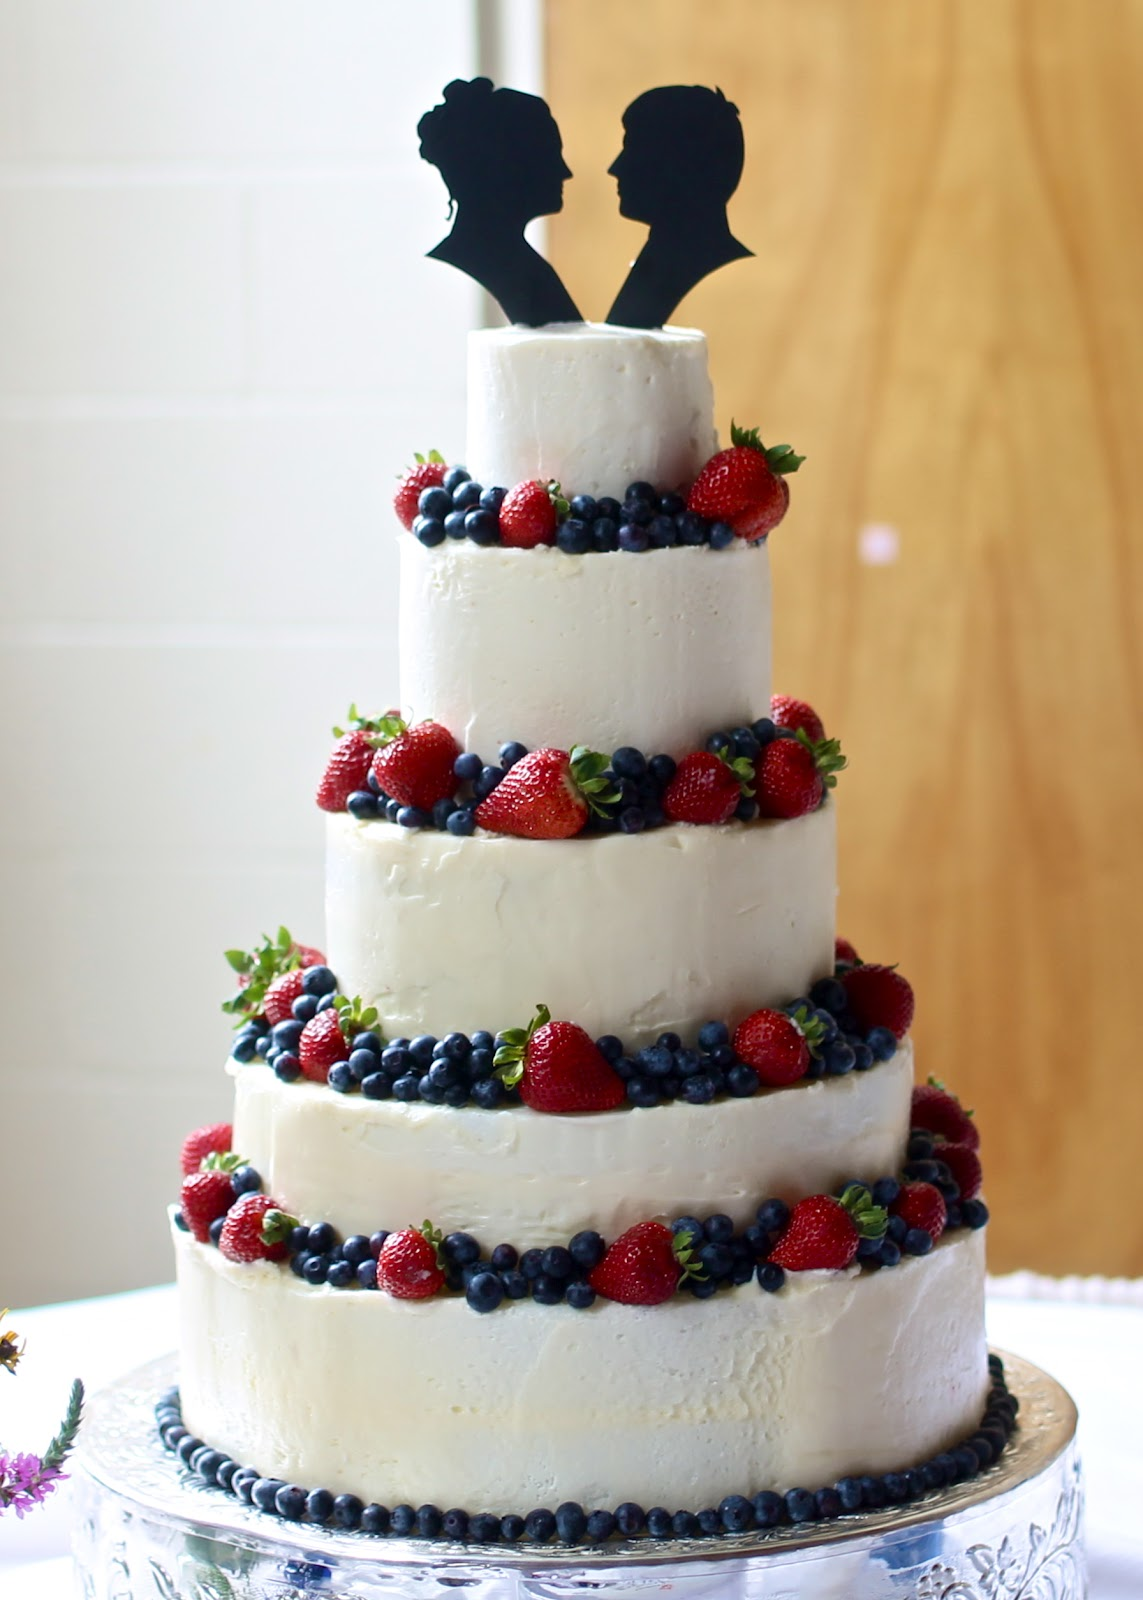 Yammie s Noshery  Wedding Cake with Berries and Silhouette Toppers